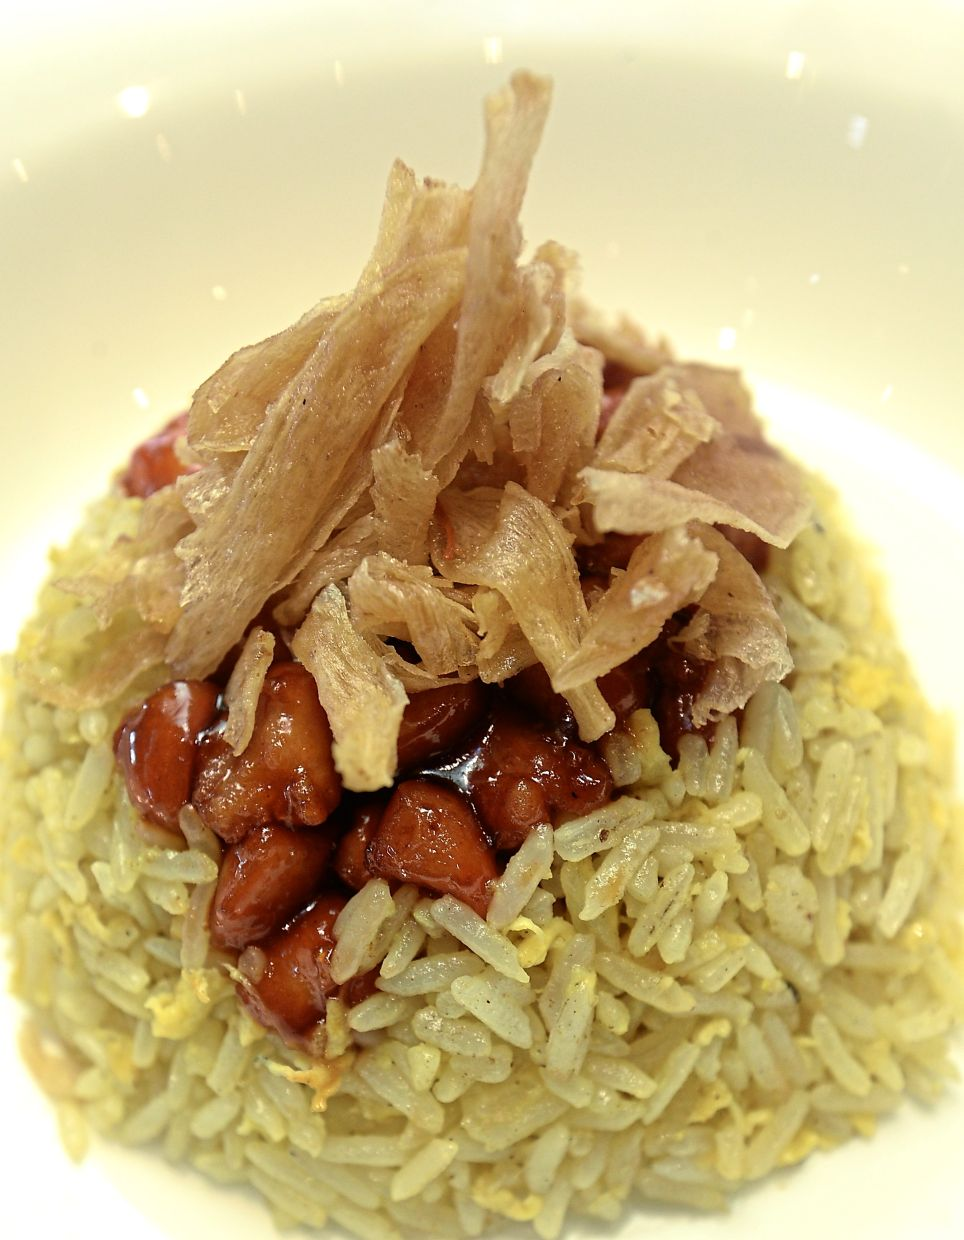 Wok-fried rice served with tangy, sweet and salty honey chicken topped with crispy paper-thin slices of candied ginger.